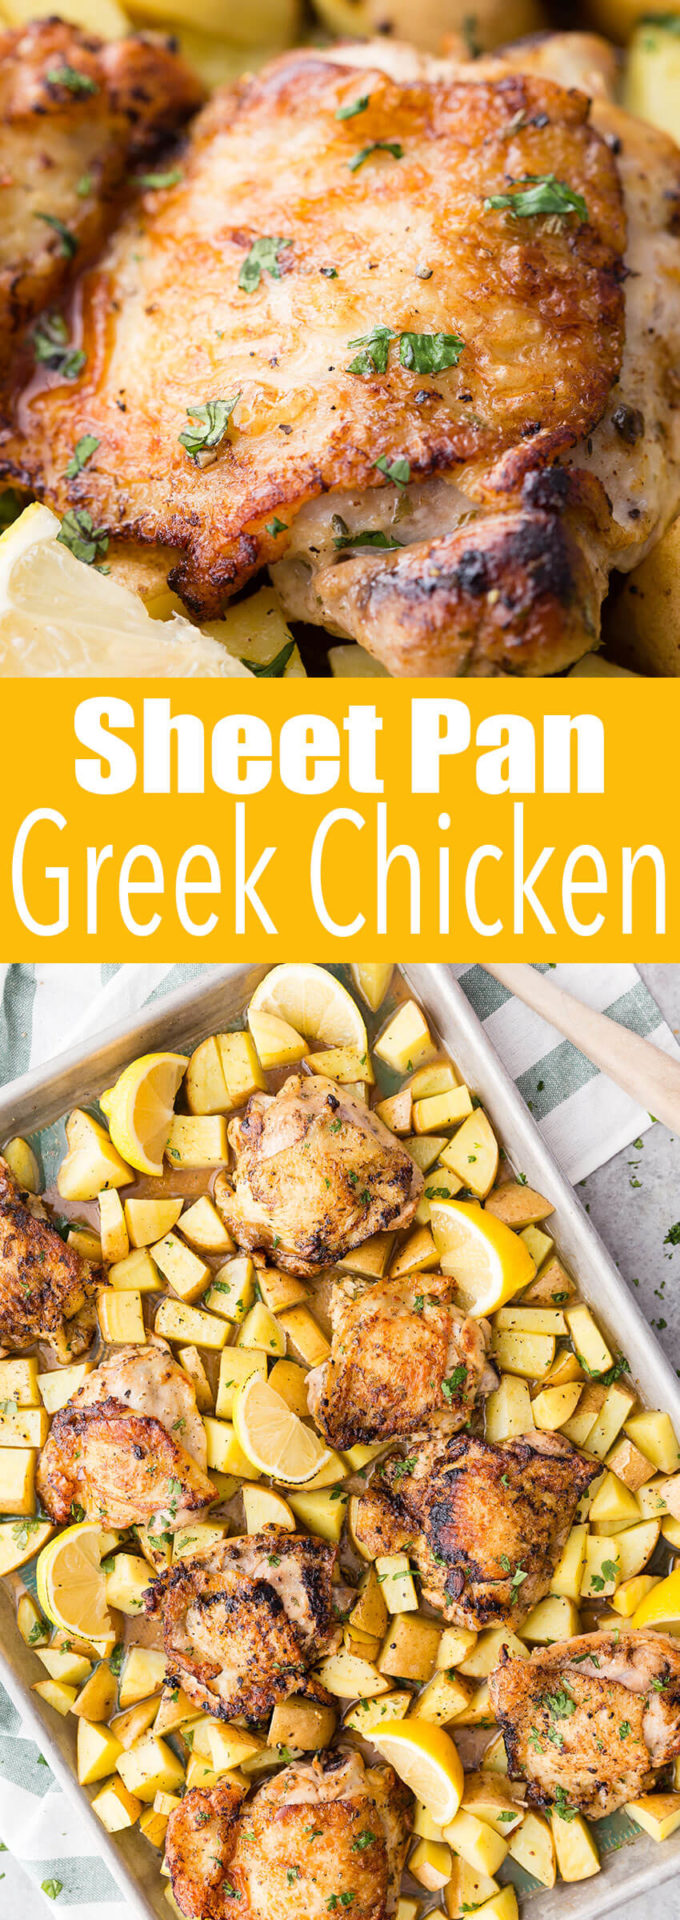 Sheet Pan Greek Chicken: This delicious chicken and potato dinner is so easy and quick to make and loaded with flavor!